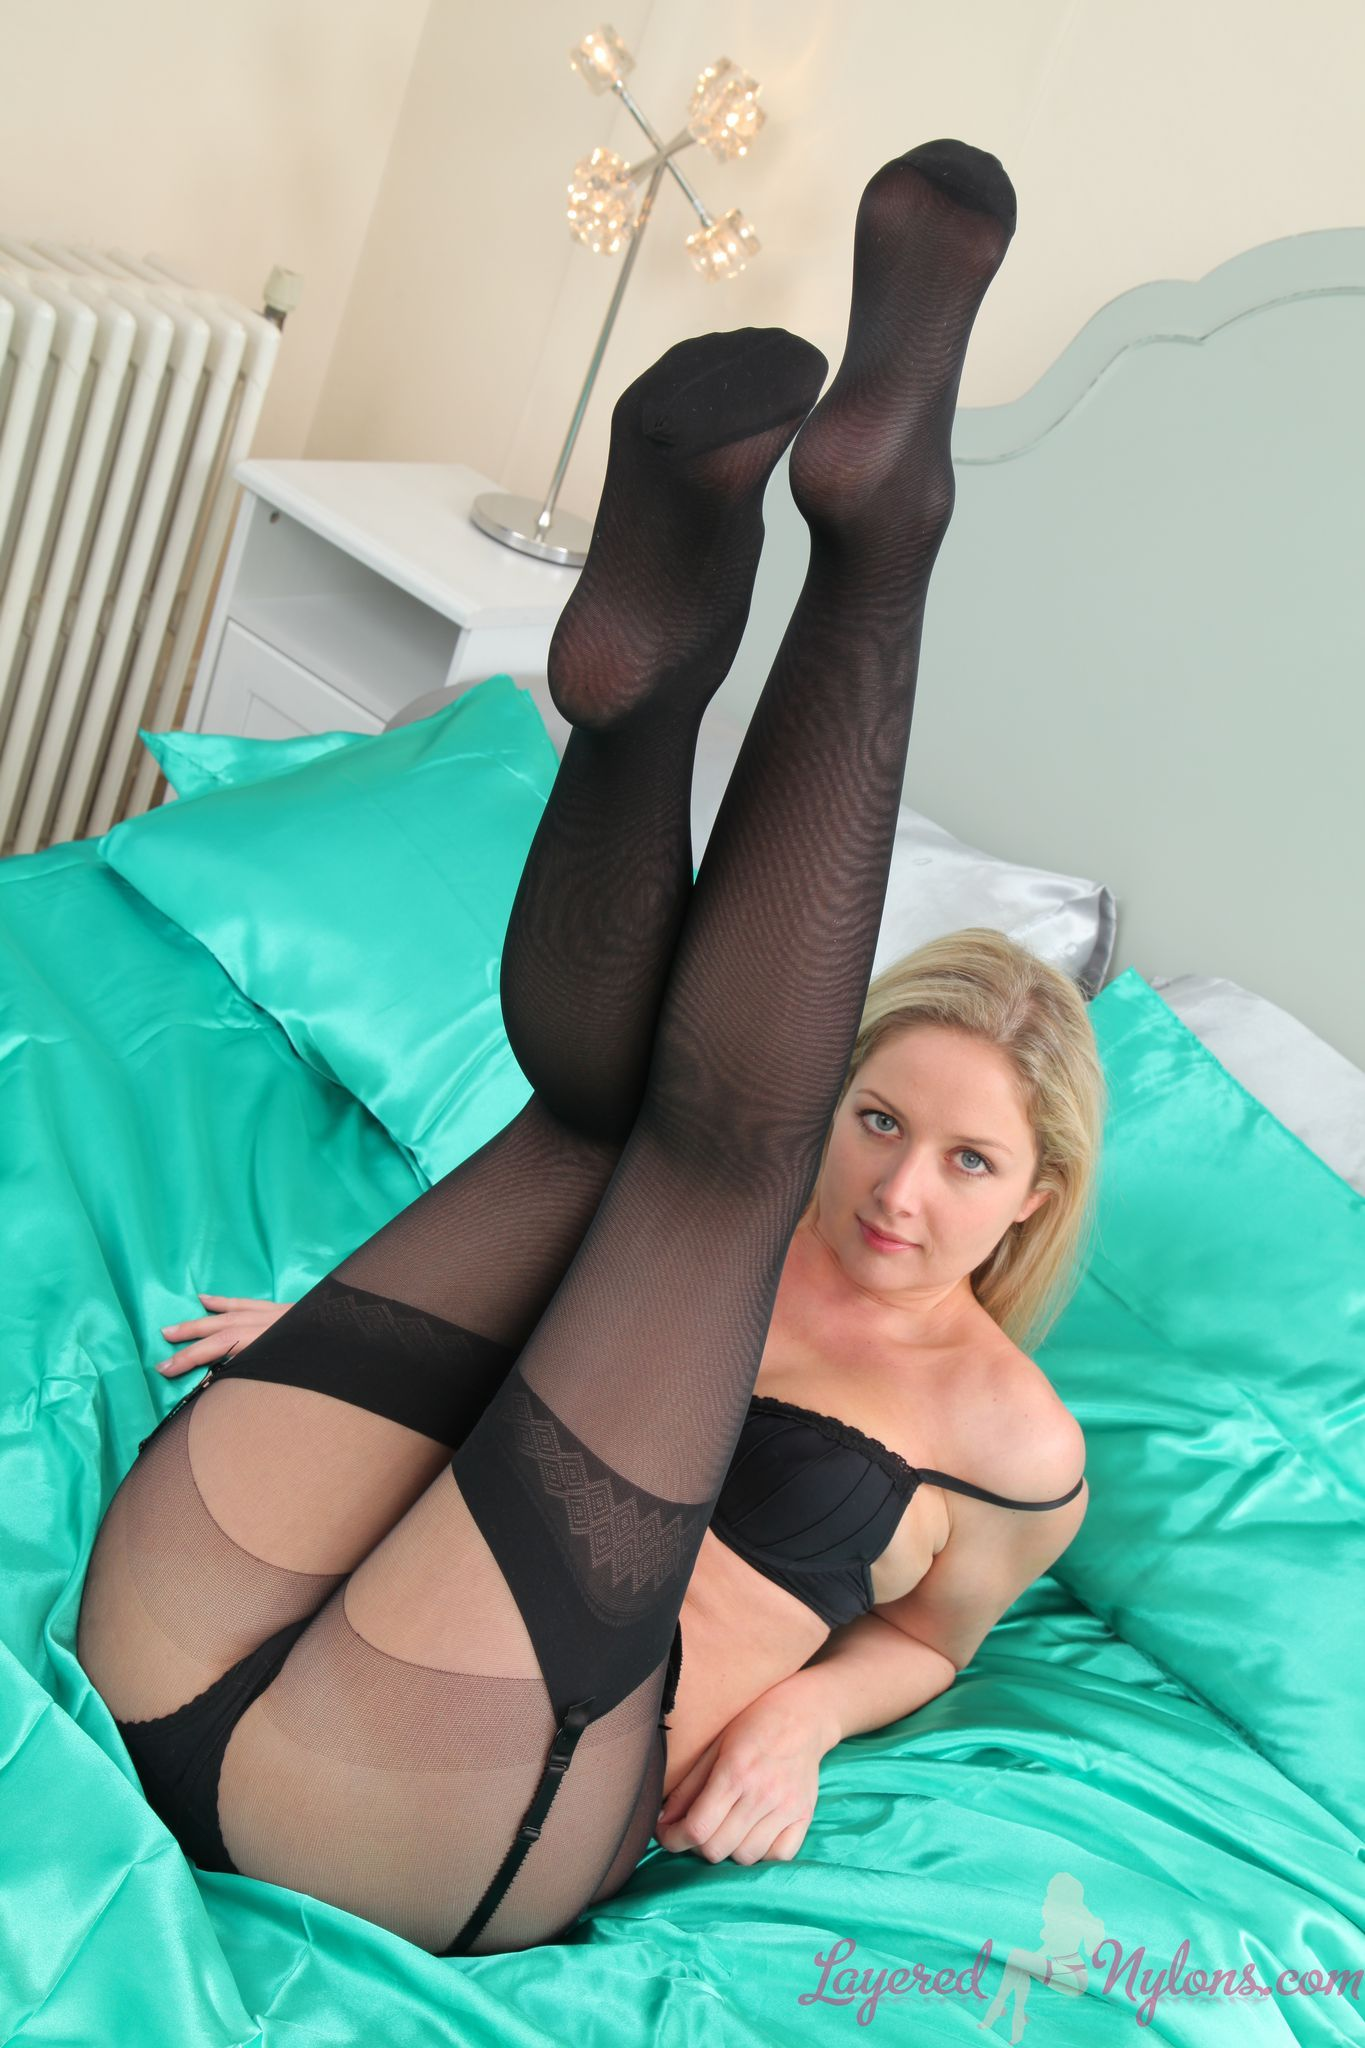 Sexy Blonde Model Teases In Black Pantyhose Over Stockings And Suspenders At Layered-Nylons